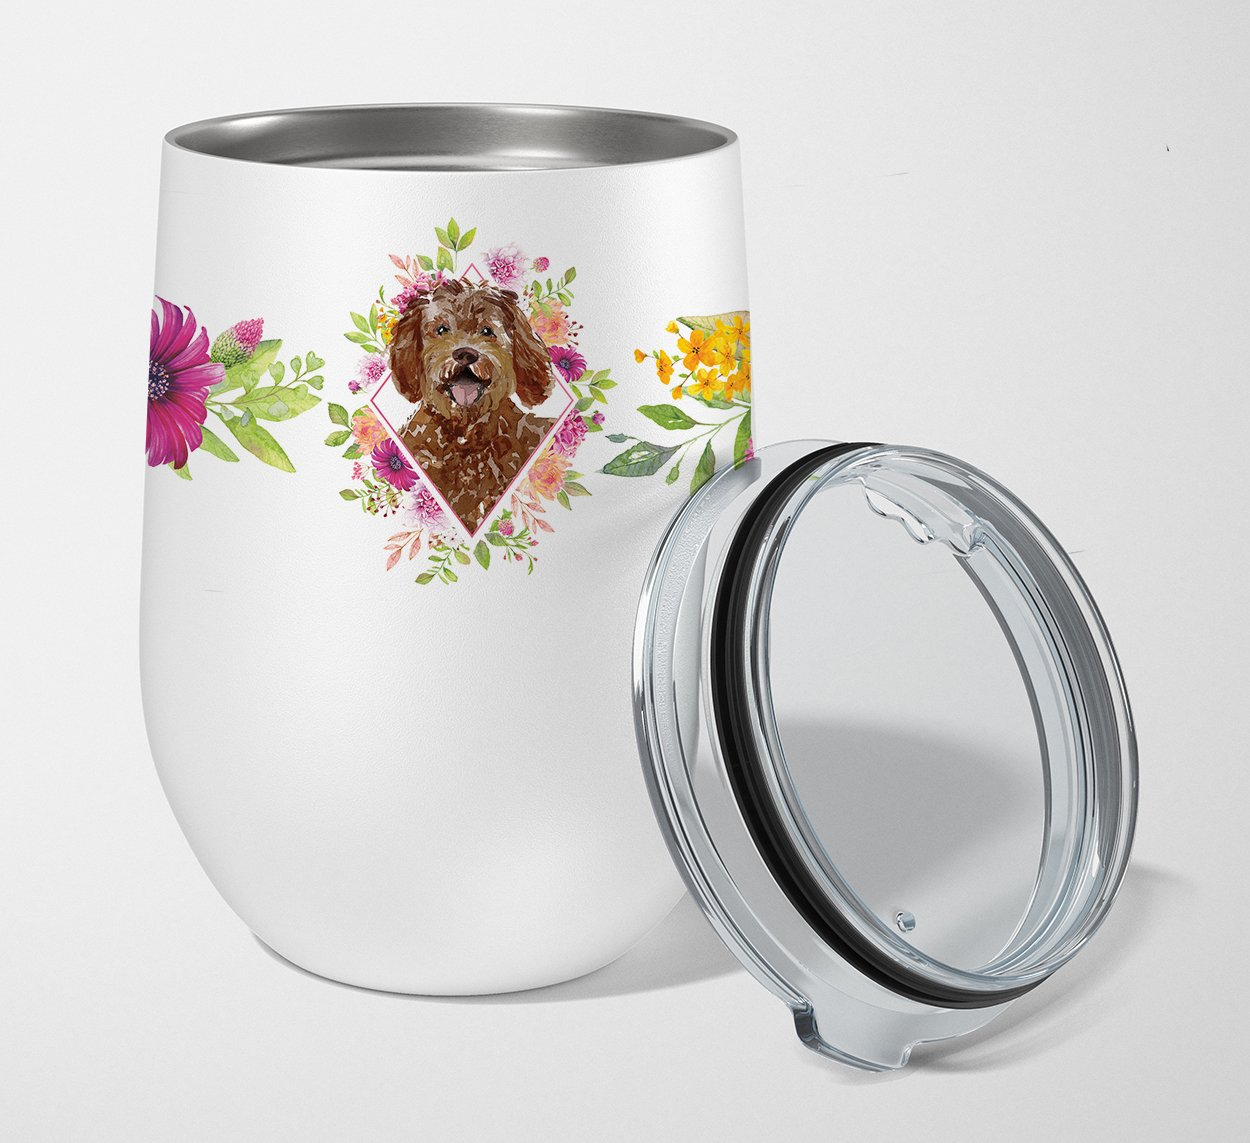 Labradoodle Pink Flowers Stainless Steel 12 oz Stemless Wine Glass CK4228TBL12 by Caroline's Treasures